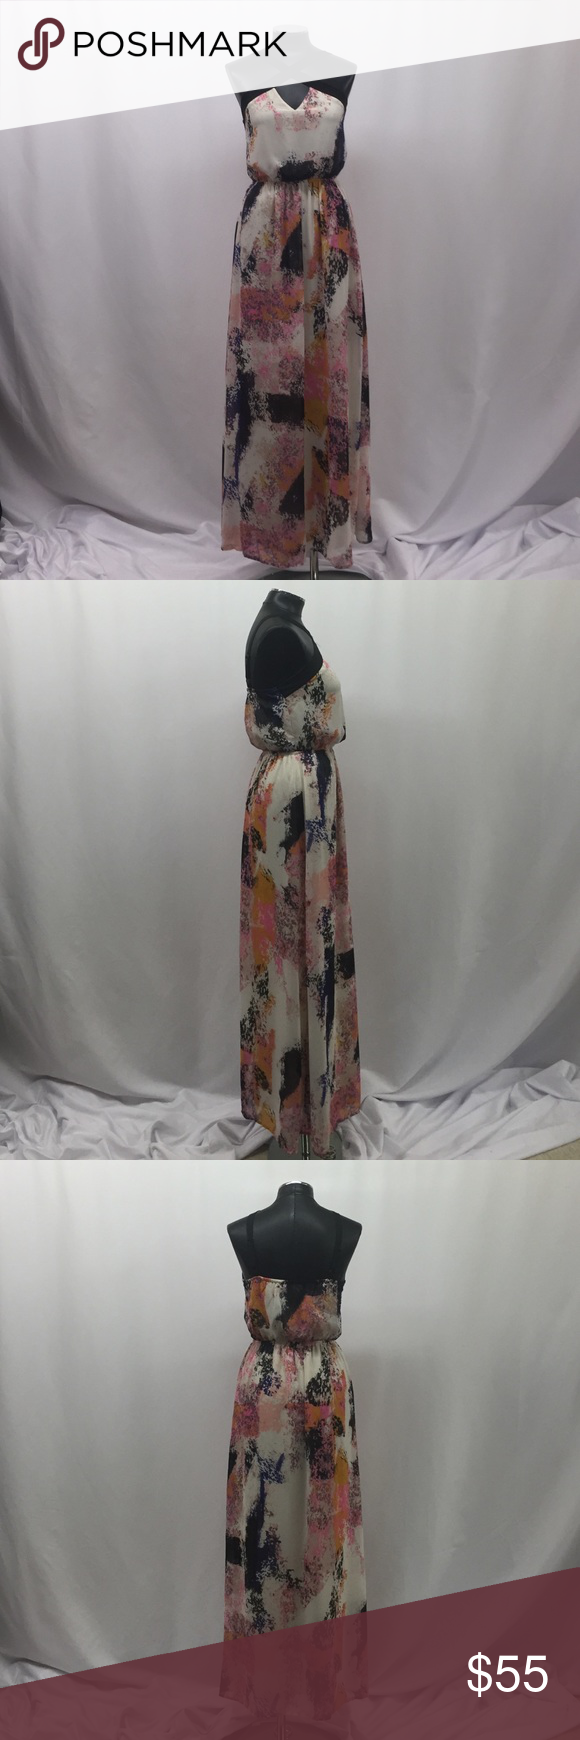 New dress Colors: pink, black, cream, peach, blue Bar III Dresses Maxi